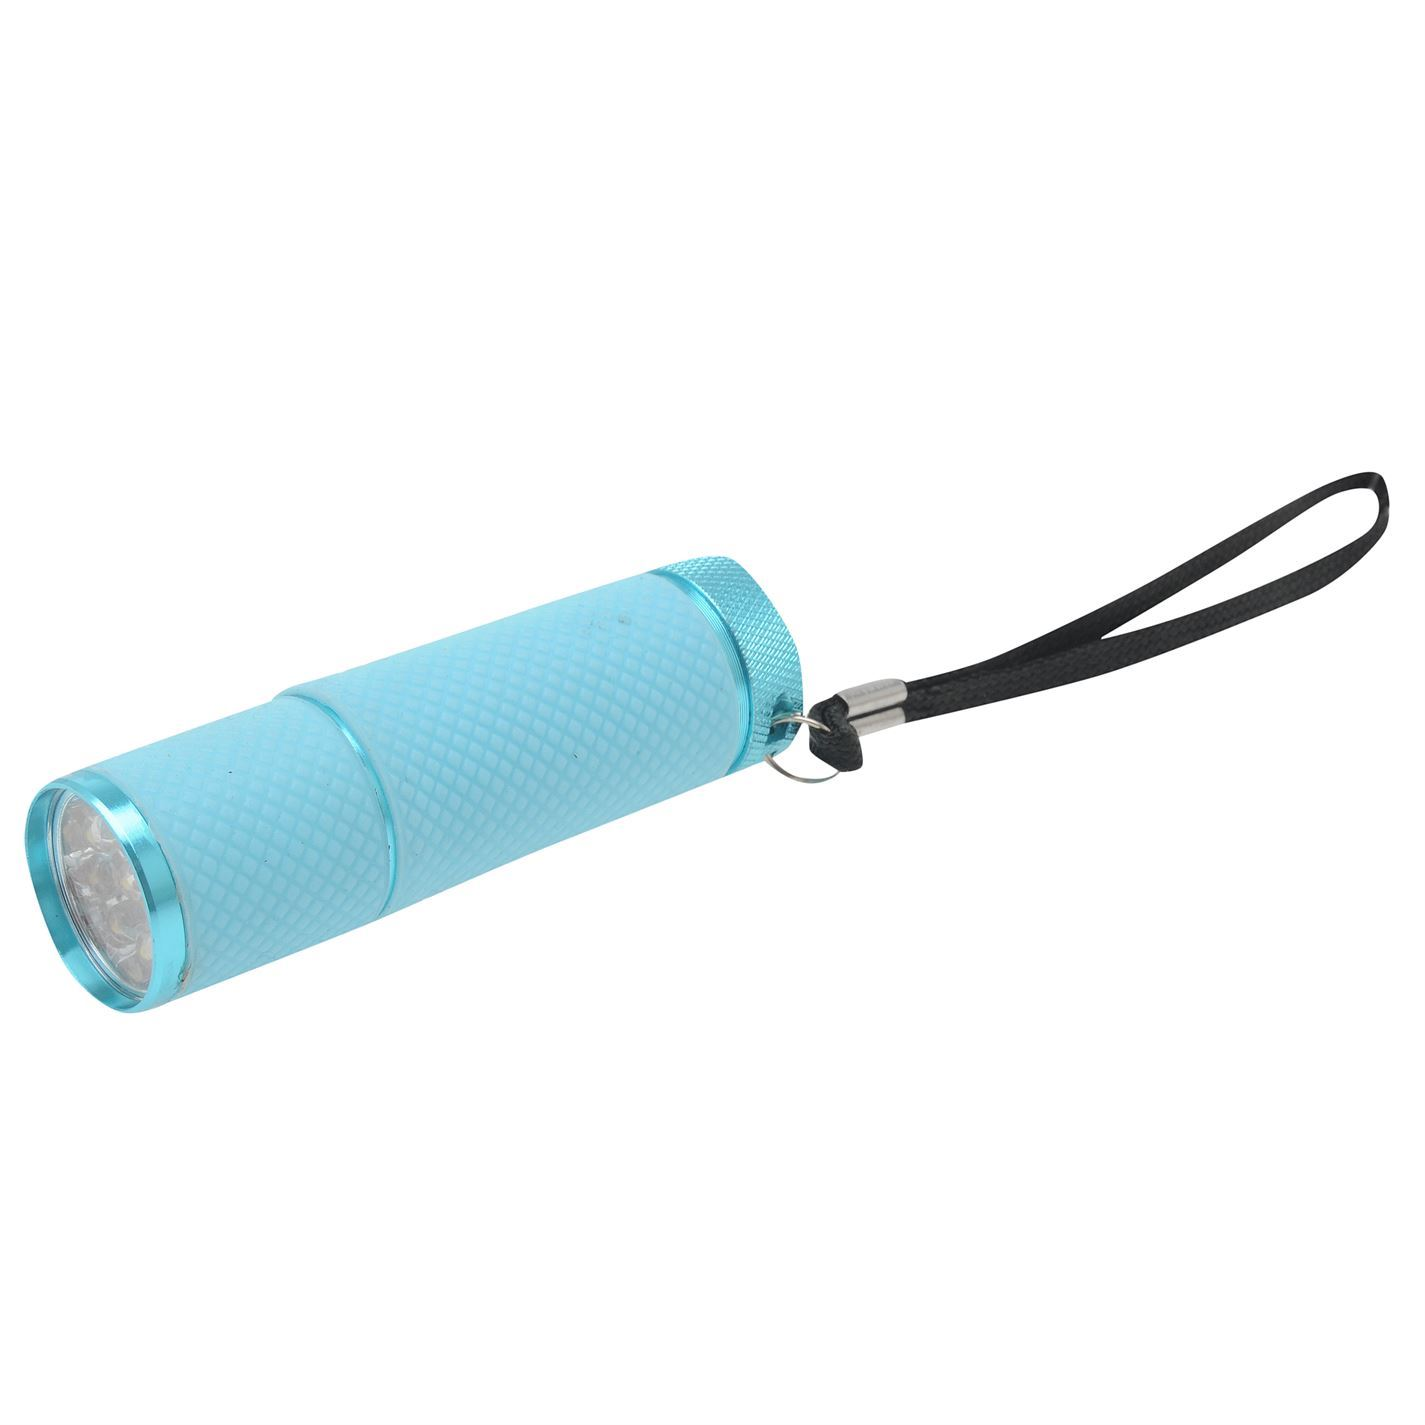 Gelert Camping Travel Lumi Glow LED Rubber Sleeve Water Resistant Torch Light - Shirebrook, United Kingdom - Gelert Camping Travel Lumi Glow LED Rubber Sleeve Water Resistant Torch Light - Shirebrook, United Kingdom